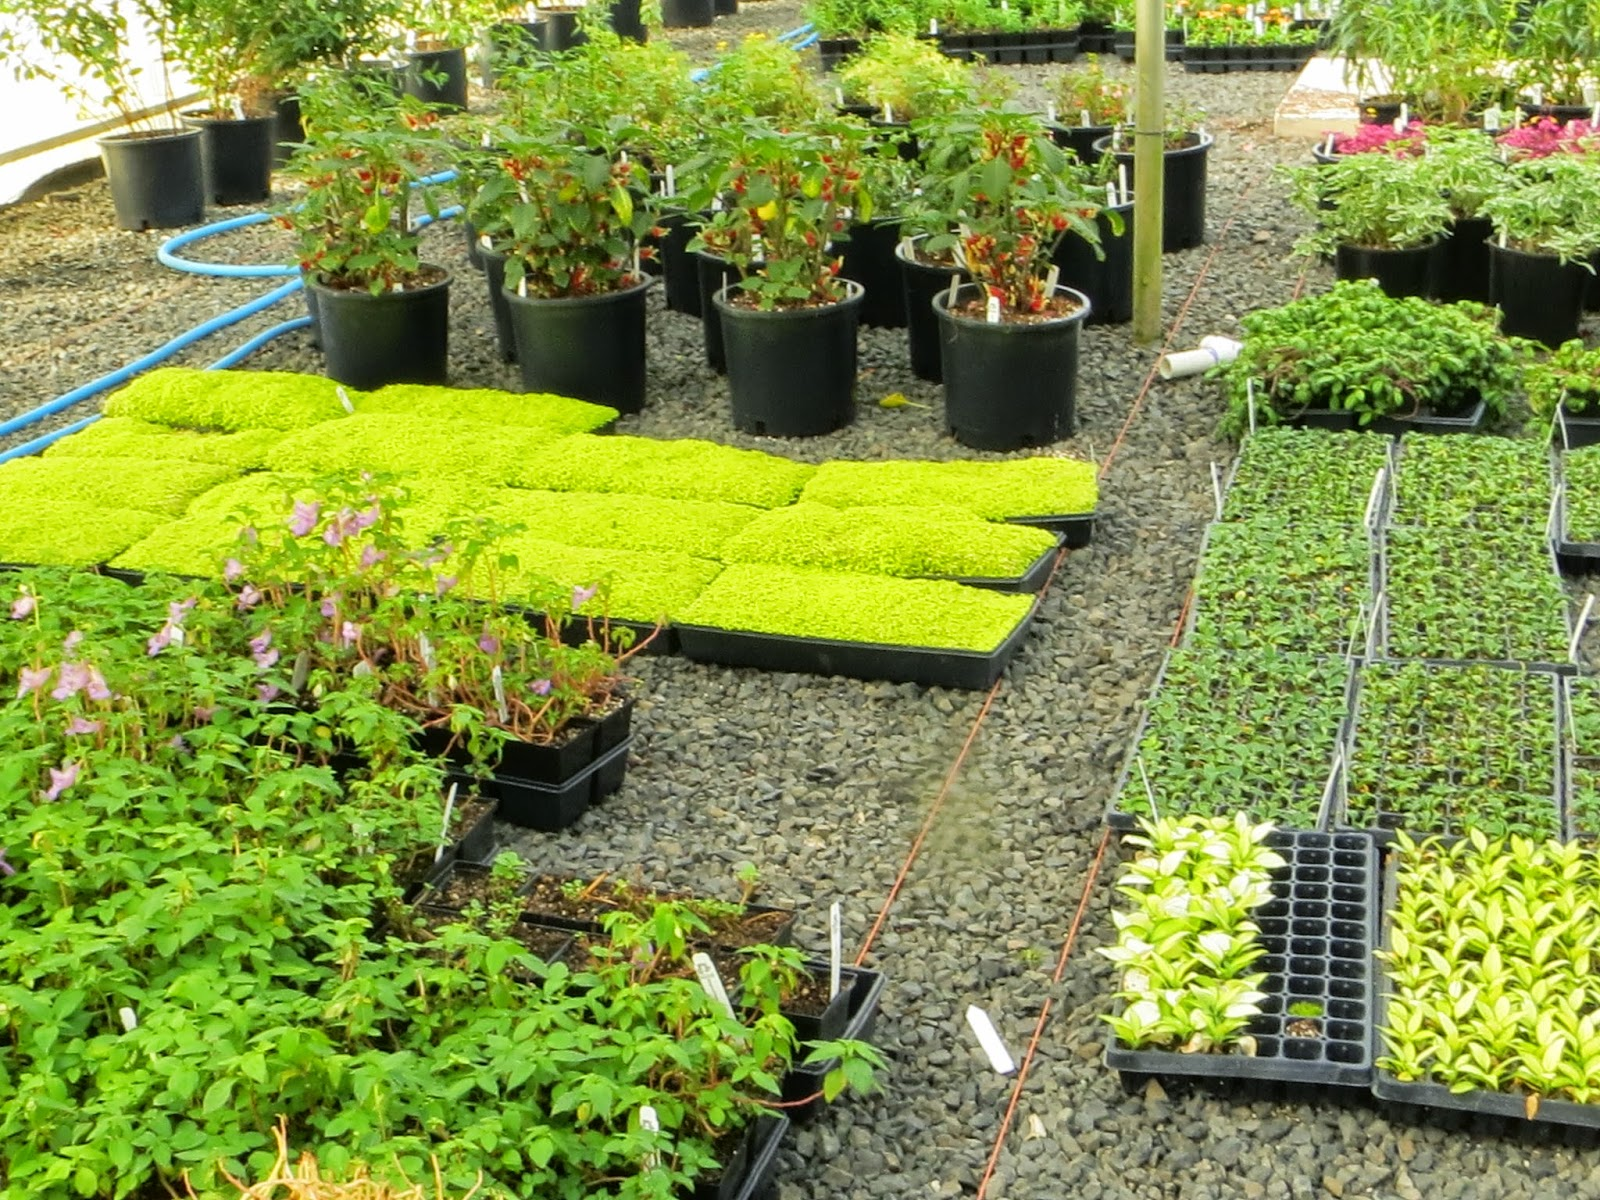 An Area Where Mark Is Propagating Stock From Fry Road Nursery, Some More  Unusual Perennials For The Fit For A King Line. He Pointed Out Several Very  ...